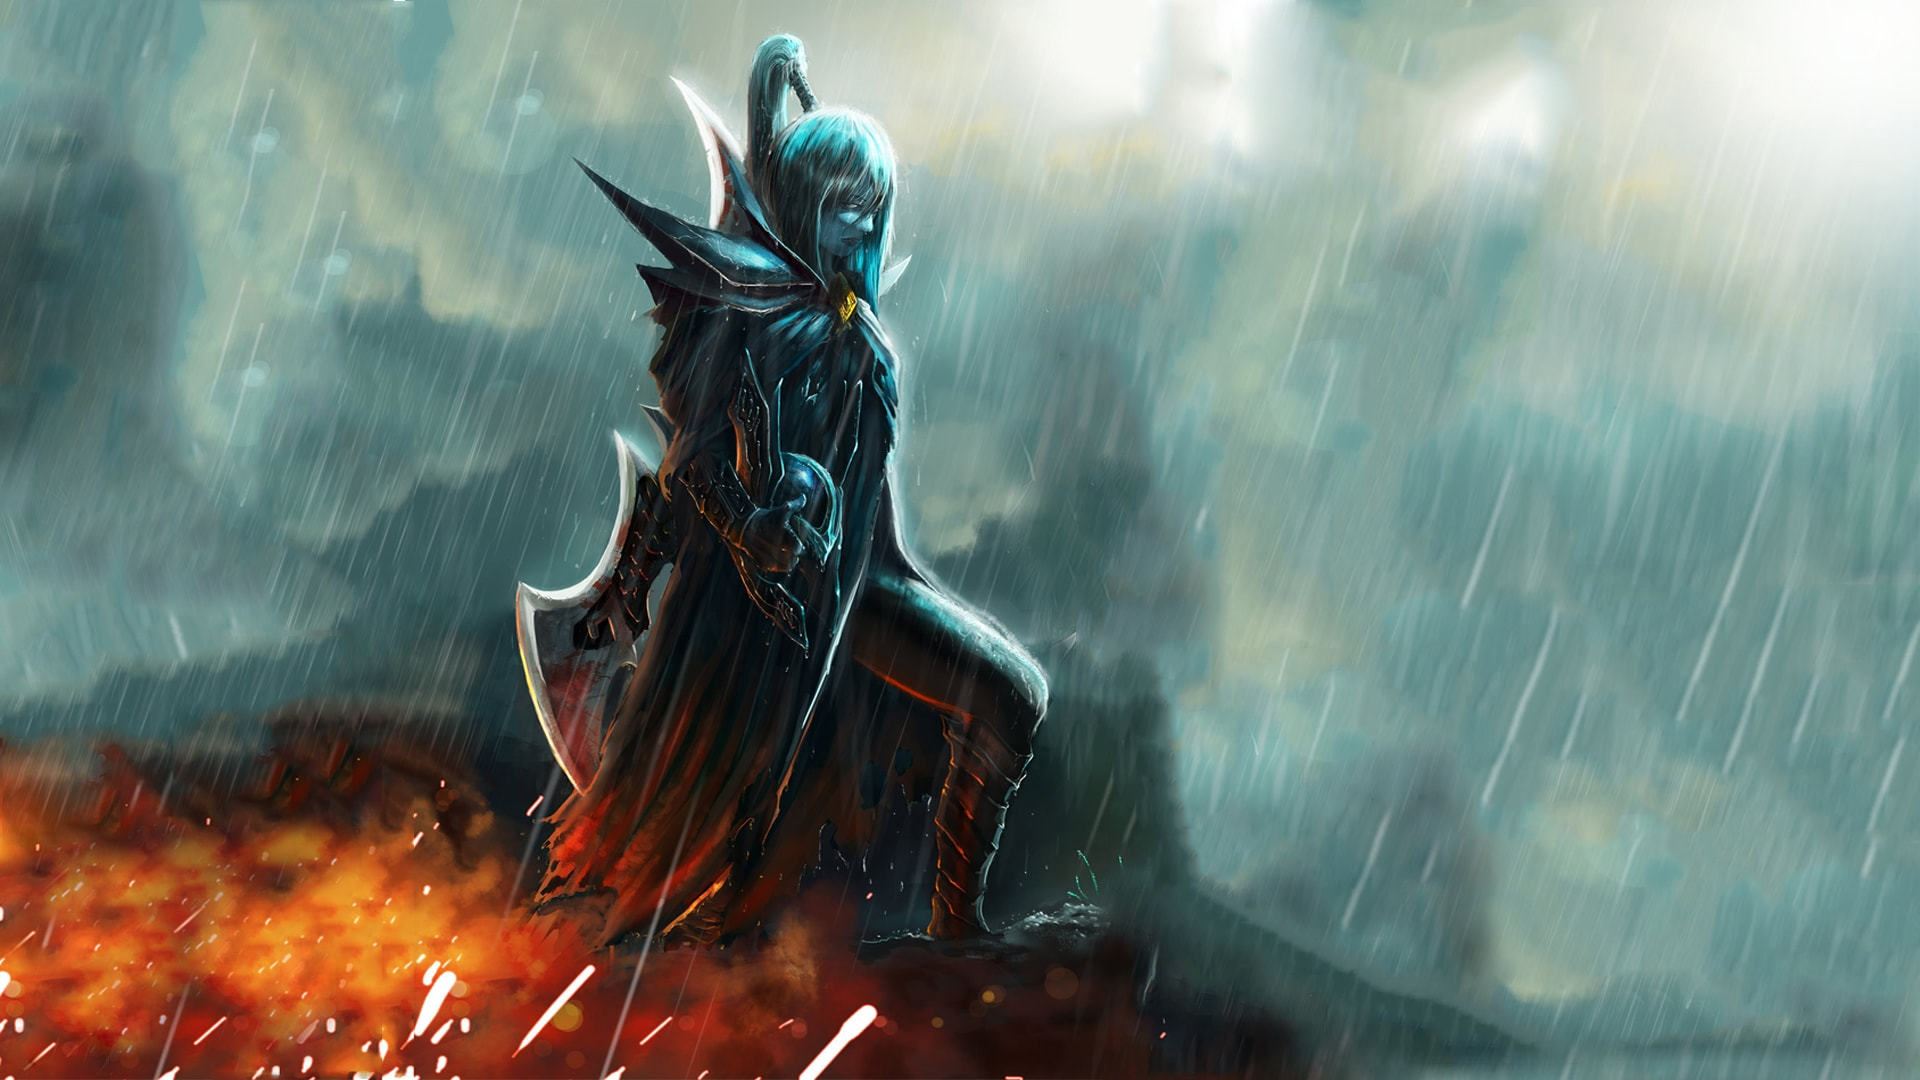 Dota2 Phantom Assassin Wallpapers Hd